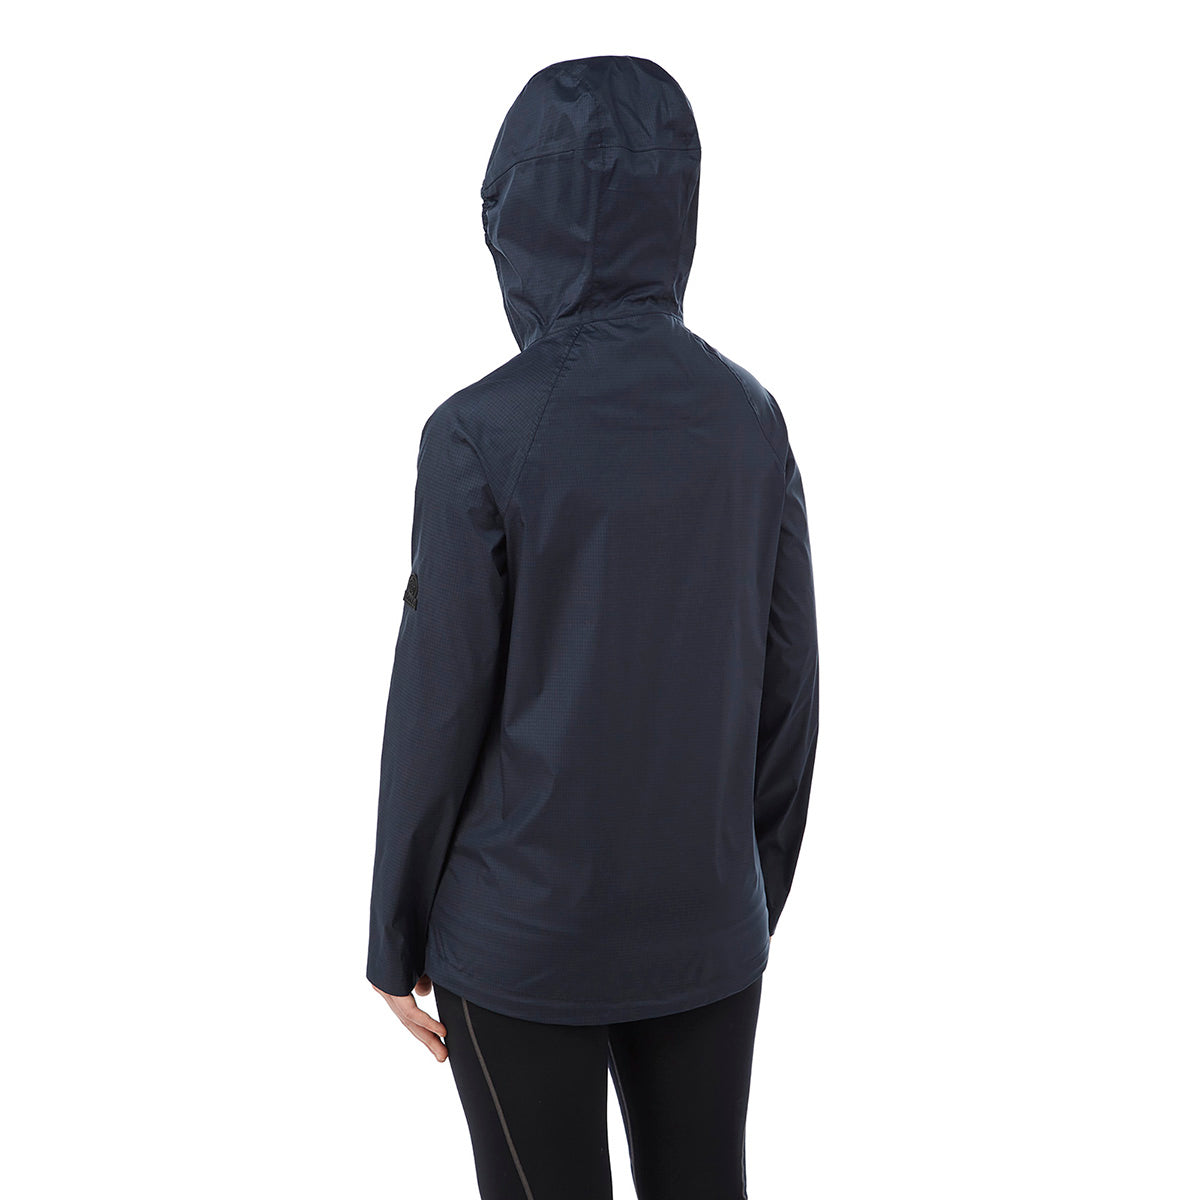 Vettel Womens Performance Waterproof Jacket - Navy image 4